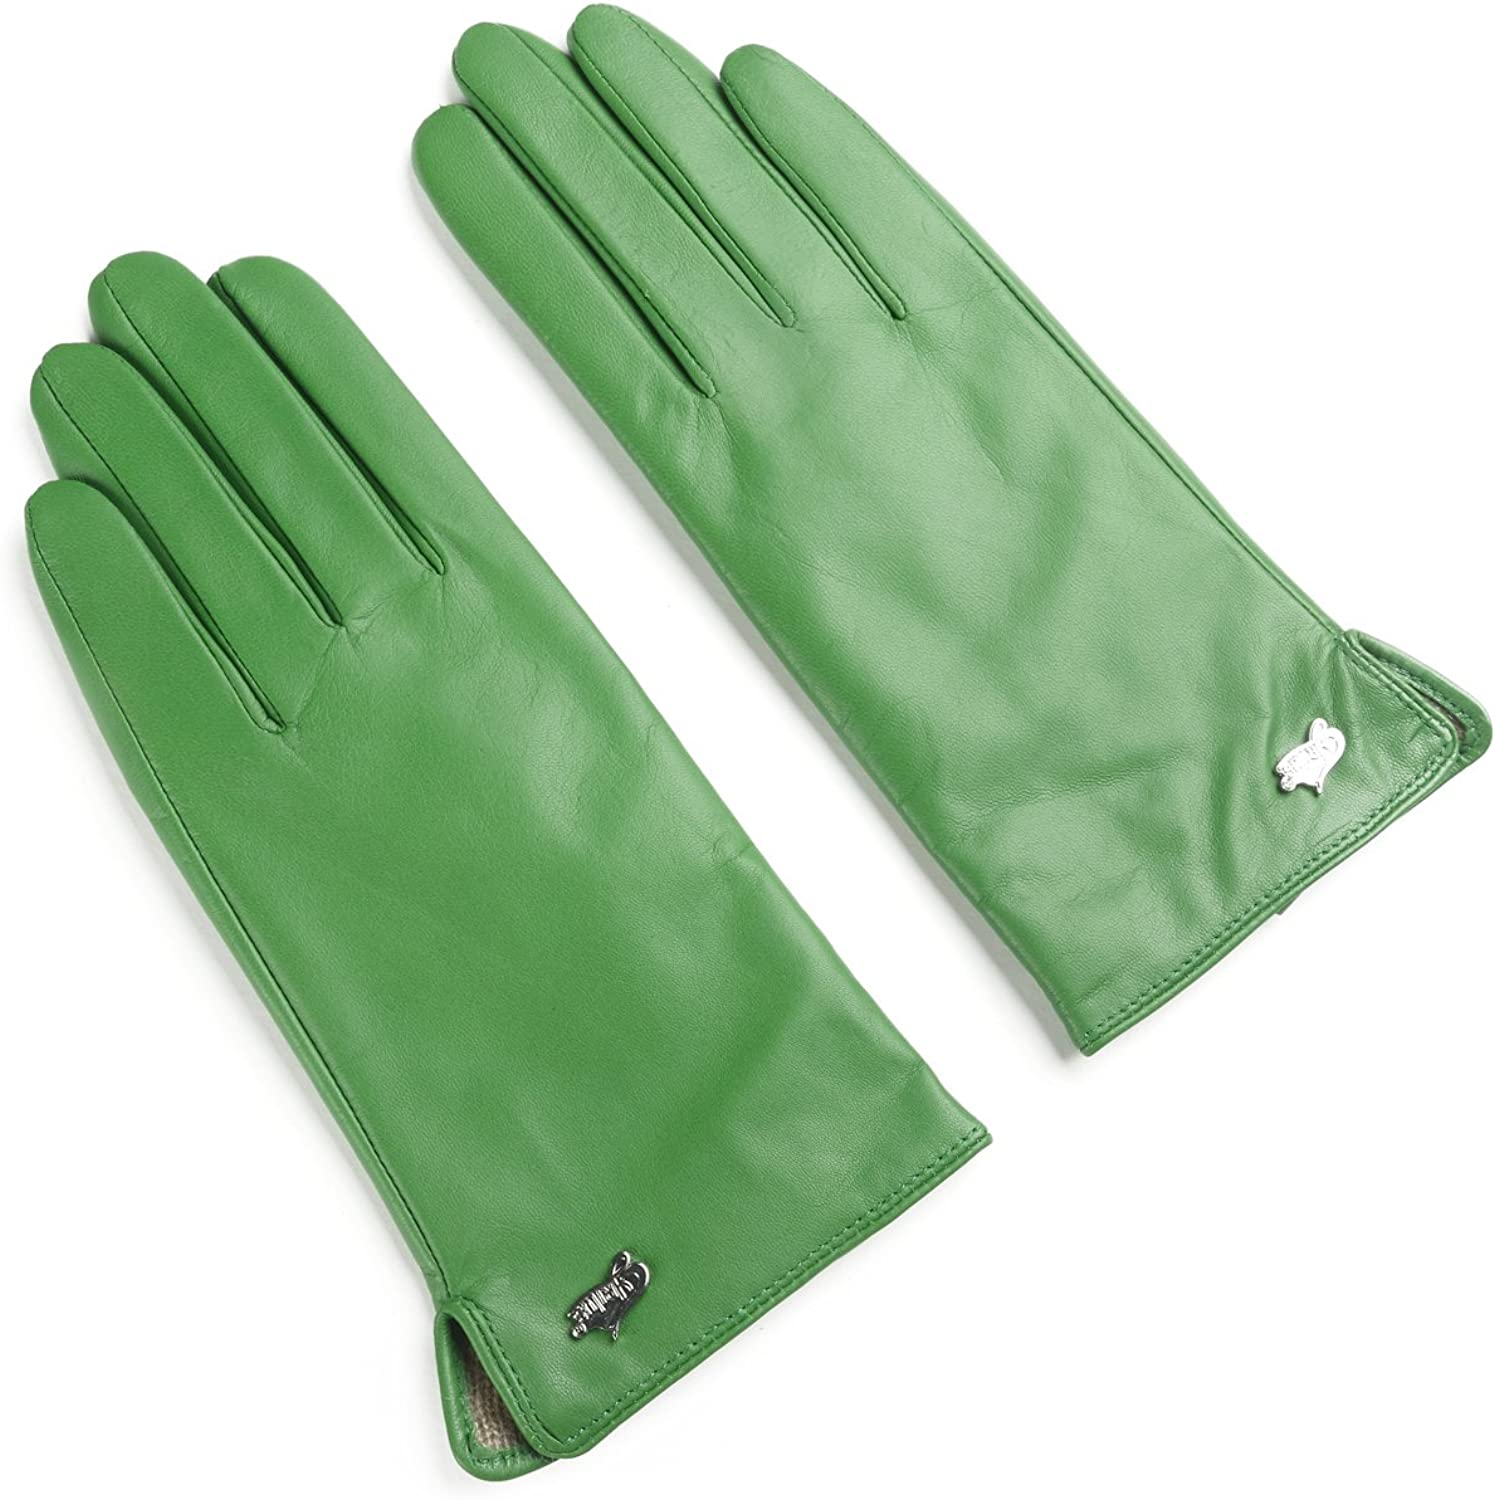 Ambesi Women's Max 47% OFF Cashmere Lined Gloves Leather Nappa Winter Brand new